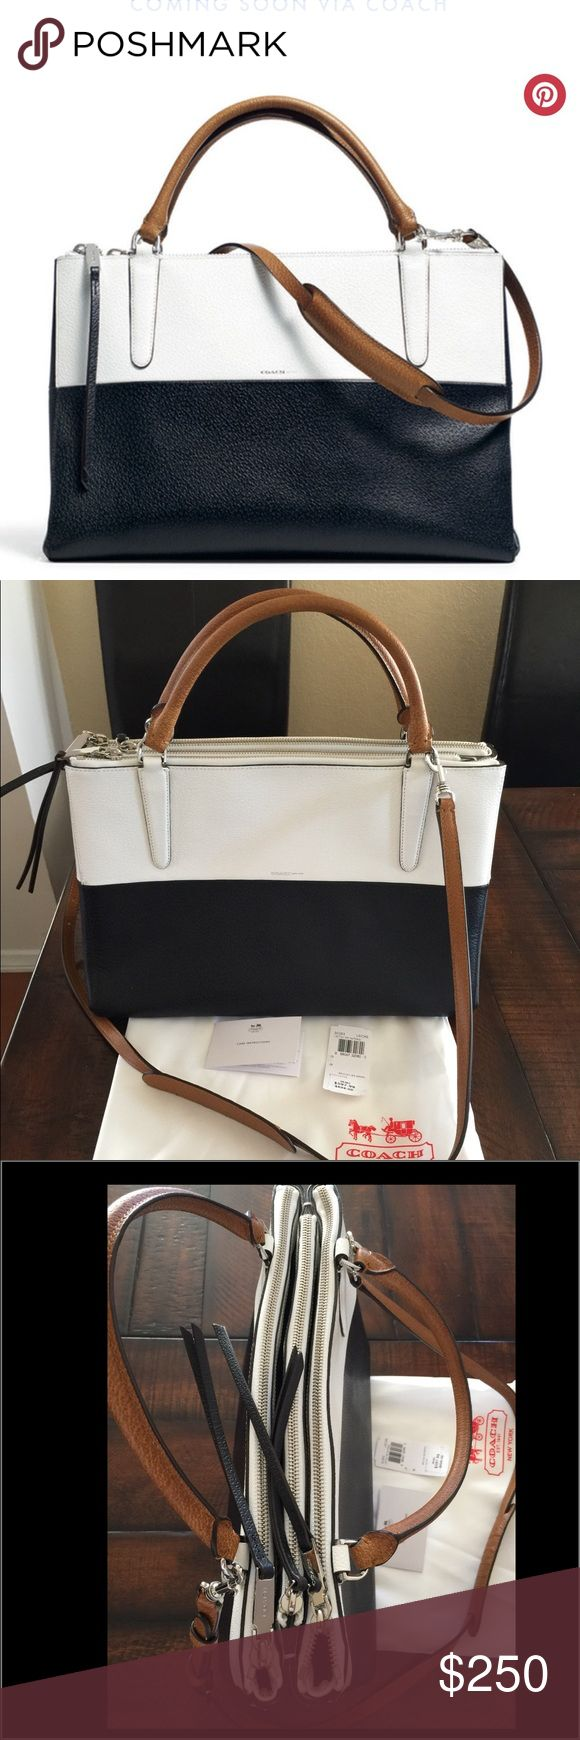 Coach Retro Boarskin Colorblock Borough bag Authentic Coach borough bag. This is perfect as a work bag. It is navy, white, tan color. I wore this maybe twice. It looks and smells new! Comes w/ care card, tag, and dustbag. Smoke and pet free home. I stopped working because of my babies so I no longer need this. It's just been sitting in my closet ever since. No scratches or pen marks. Just a very tiny wear on the bottom corners but you can't really see it. I tried taking photos but it doesn't…